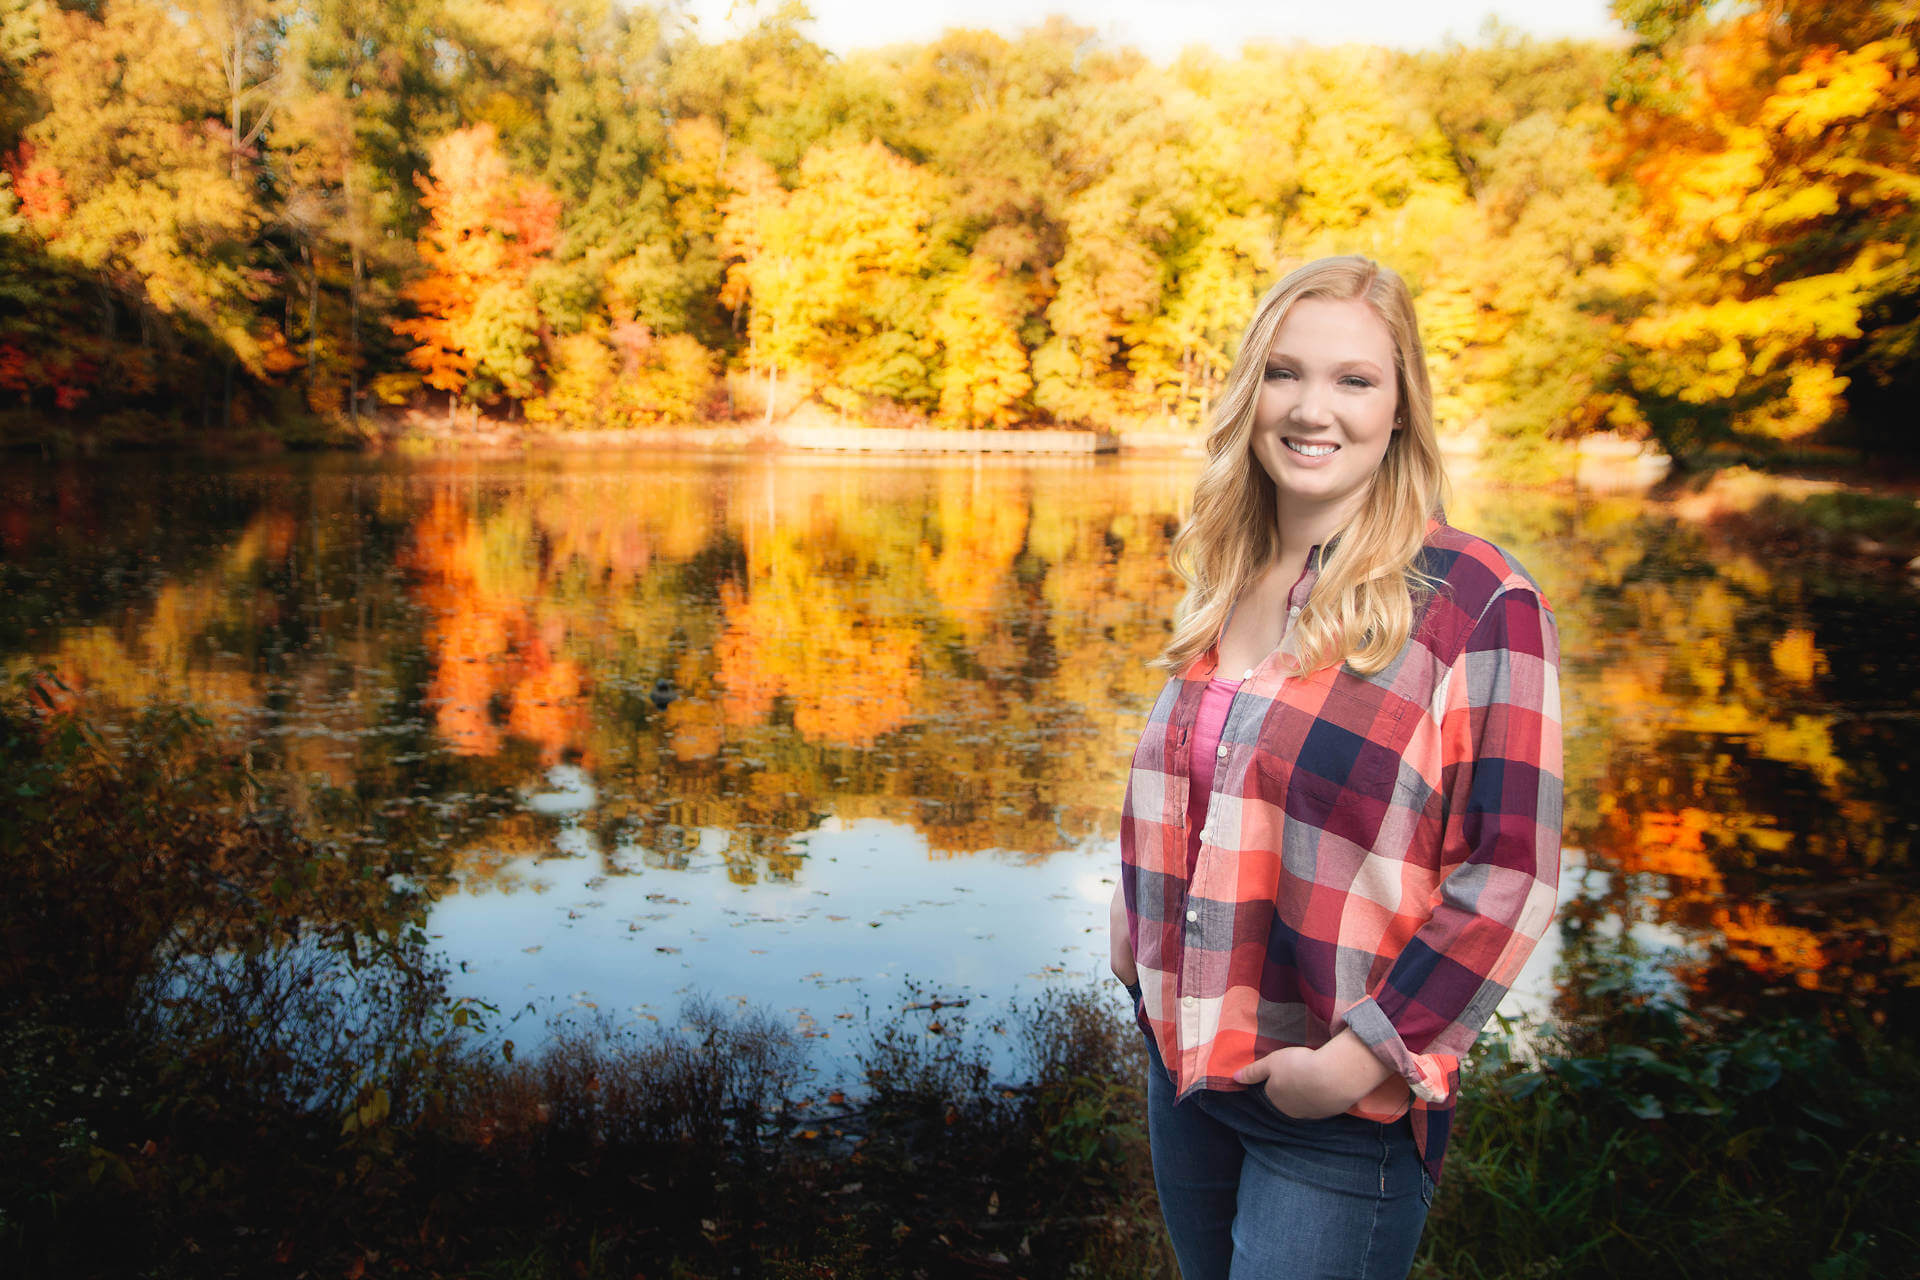 Pretty Fall Senior Pictures of Girl at Mill Creek Park Lily Pond   Kropp Photography - Senior Pictures Portfolio